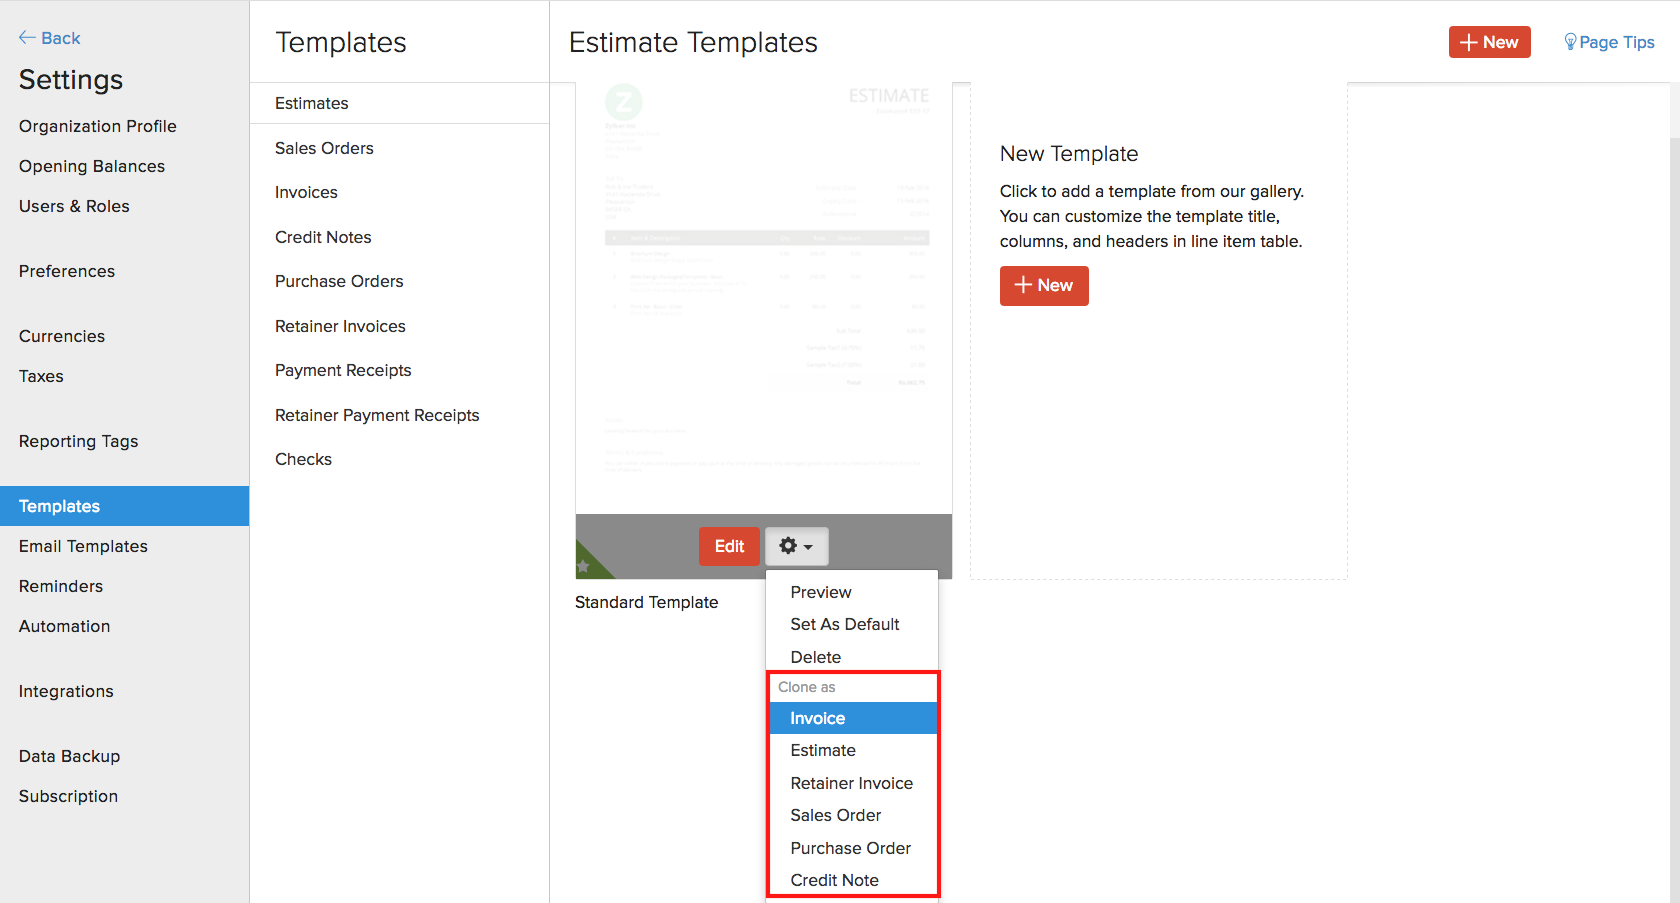 Templates | User Guide | Zoho Books